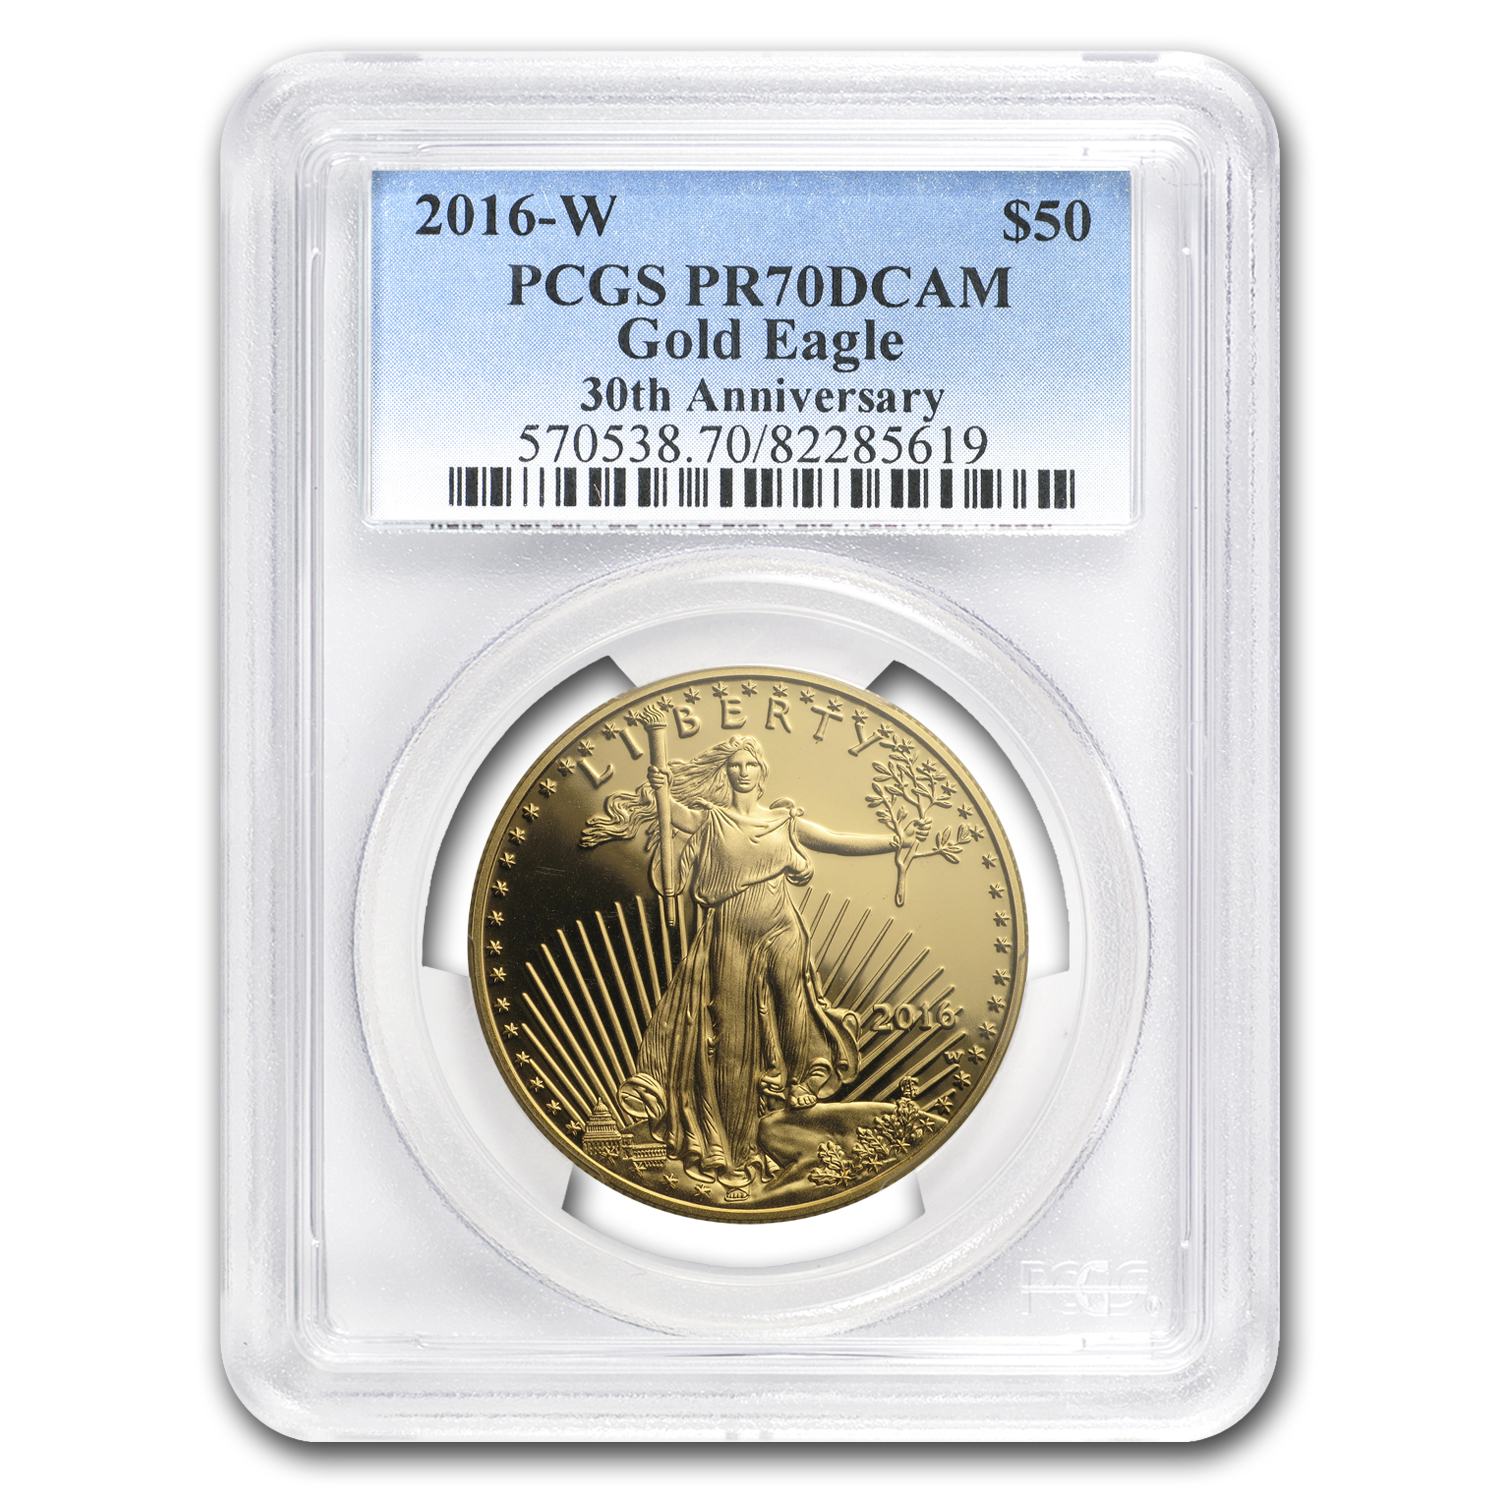 2016-W 1 oz Proof Gold American Eagle PR-70 PCGS